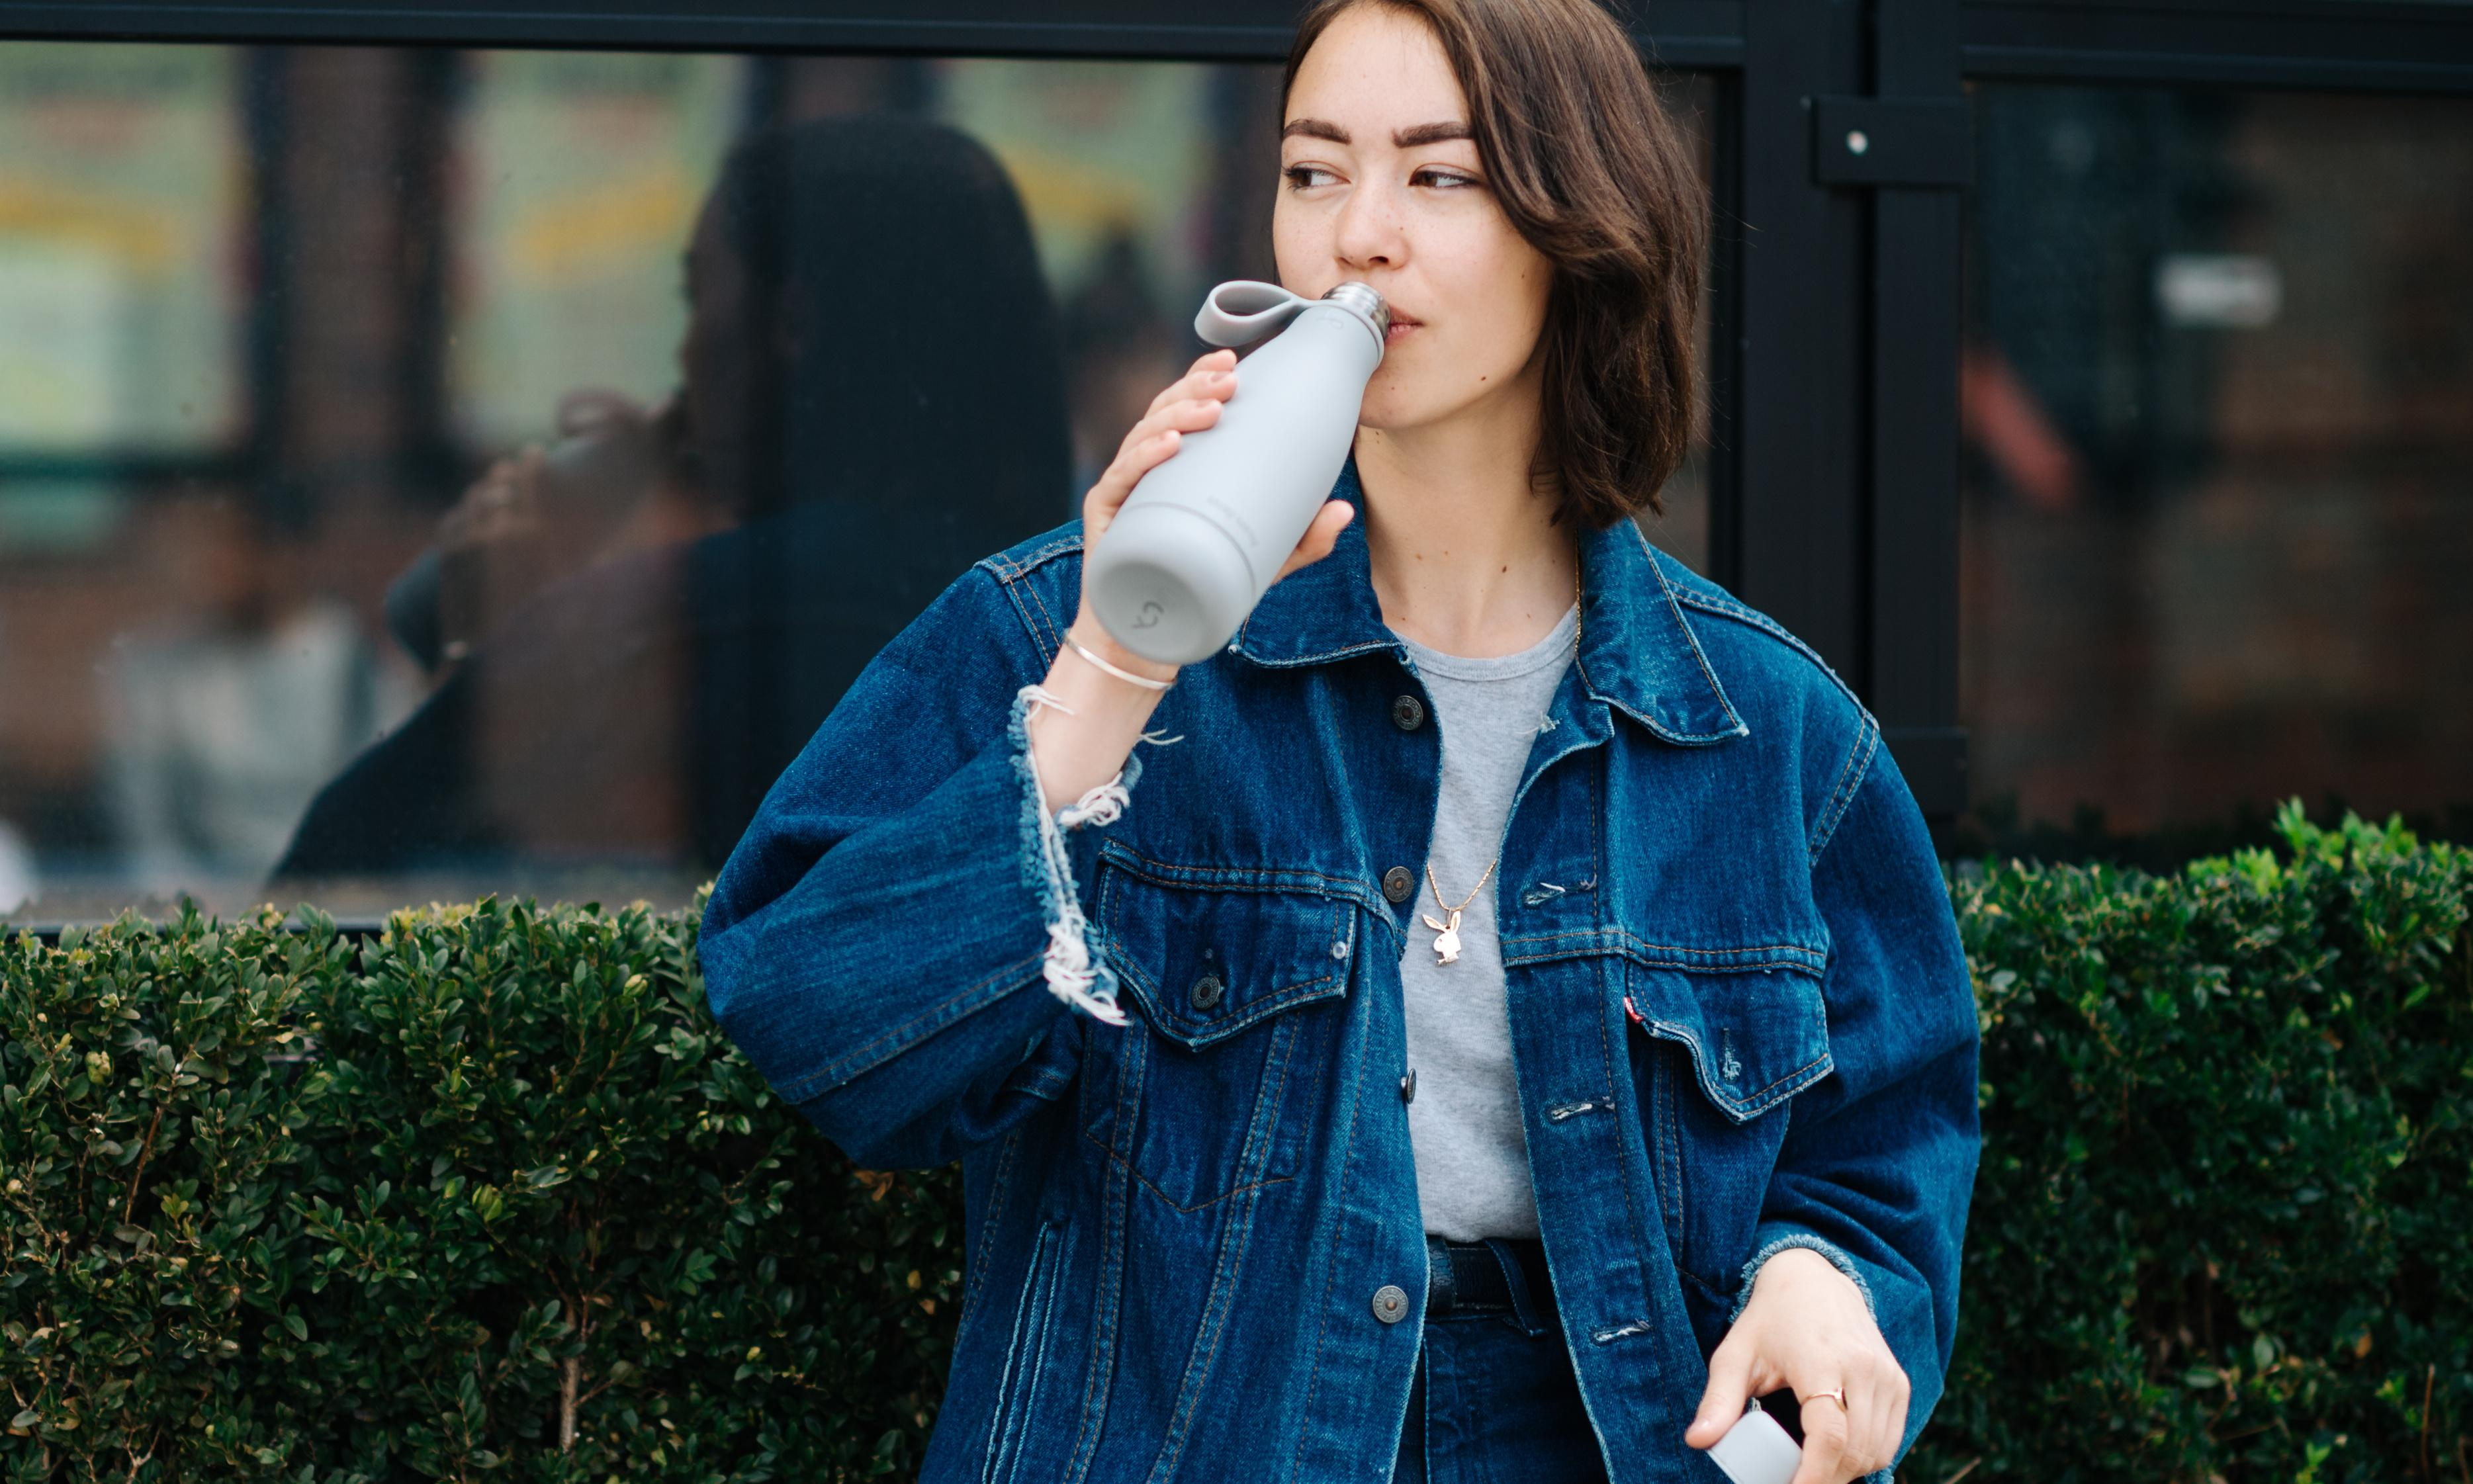 That's not just a water bottle – it's a status symbol